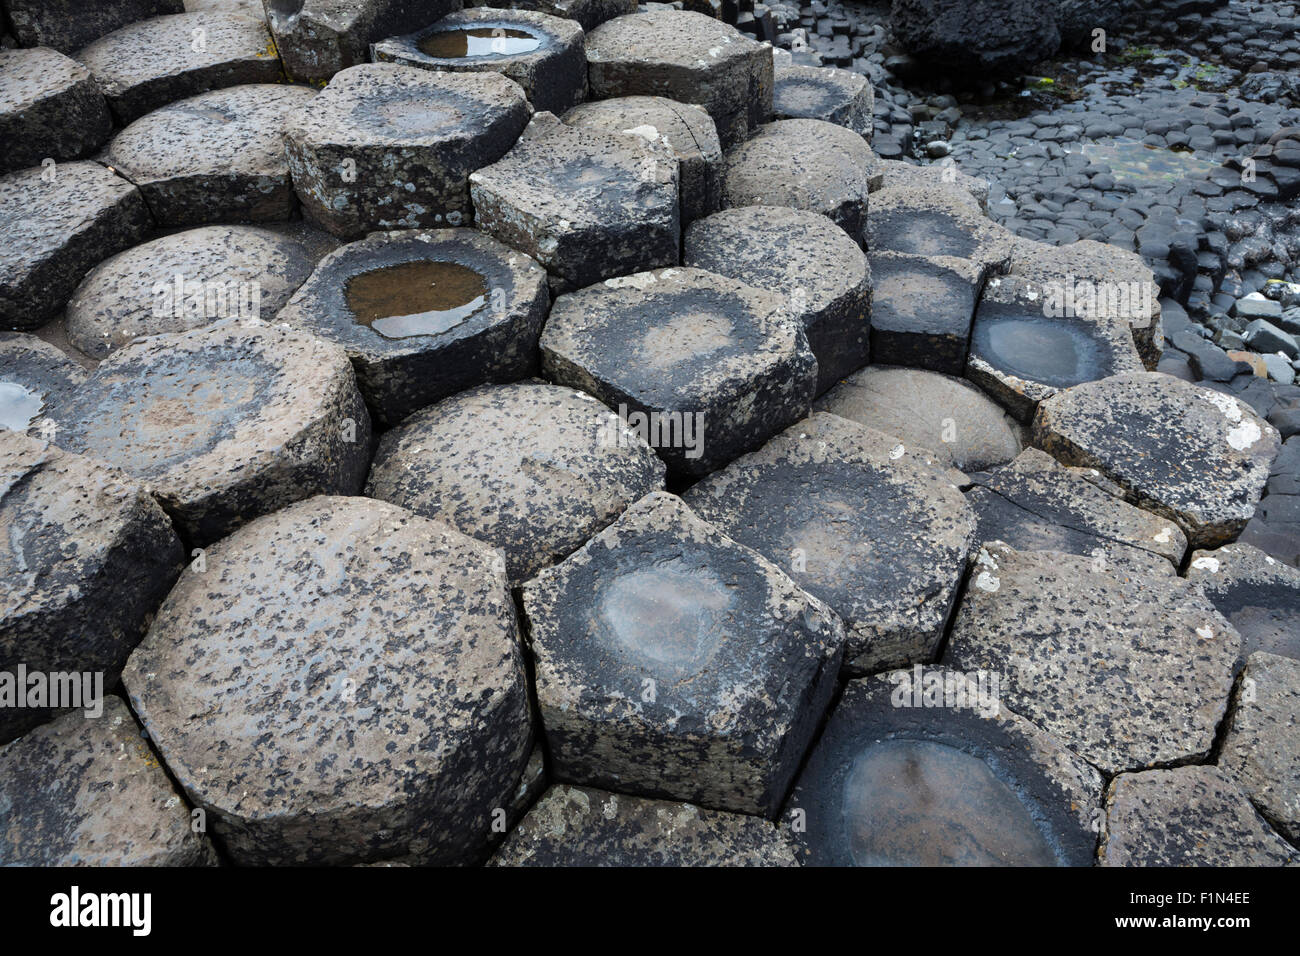 Tidal pool and basalt columns at Giant's Causeway, County Antrim, Northern Ireland - Stock Image